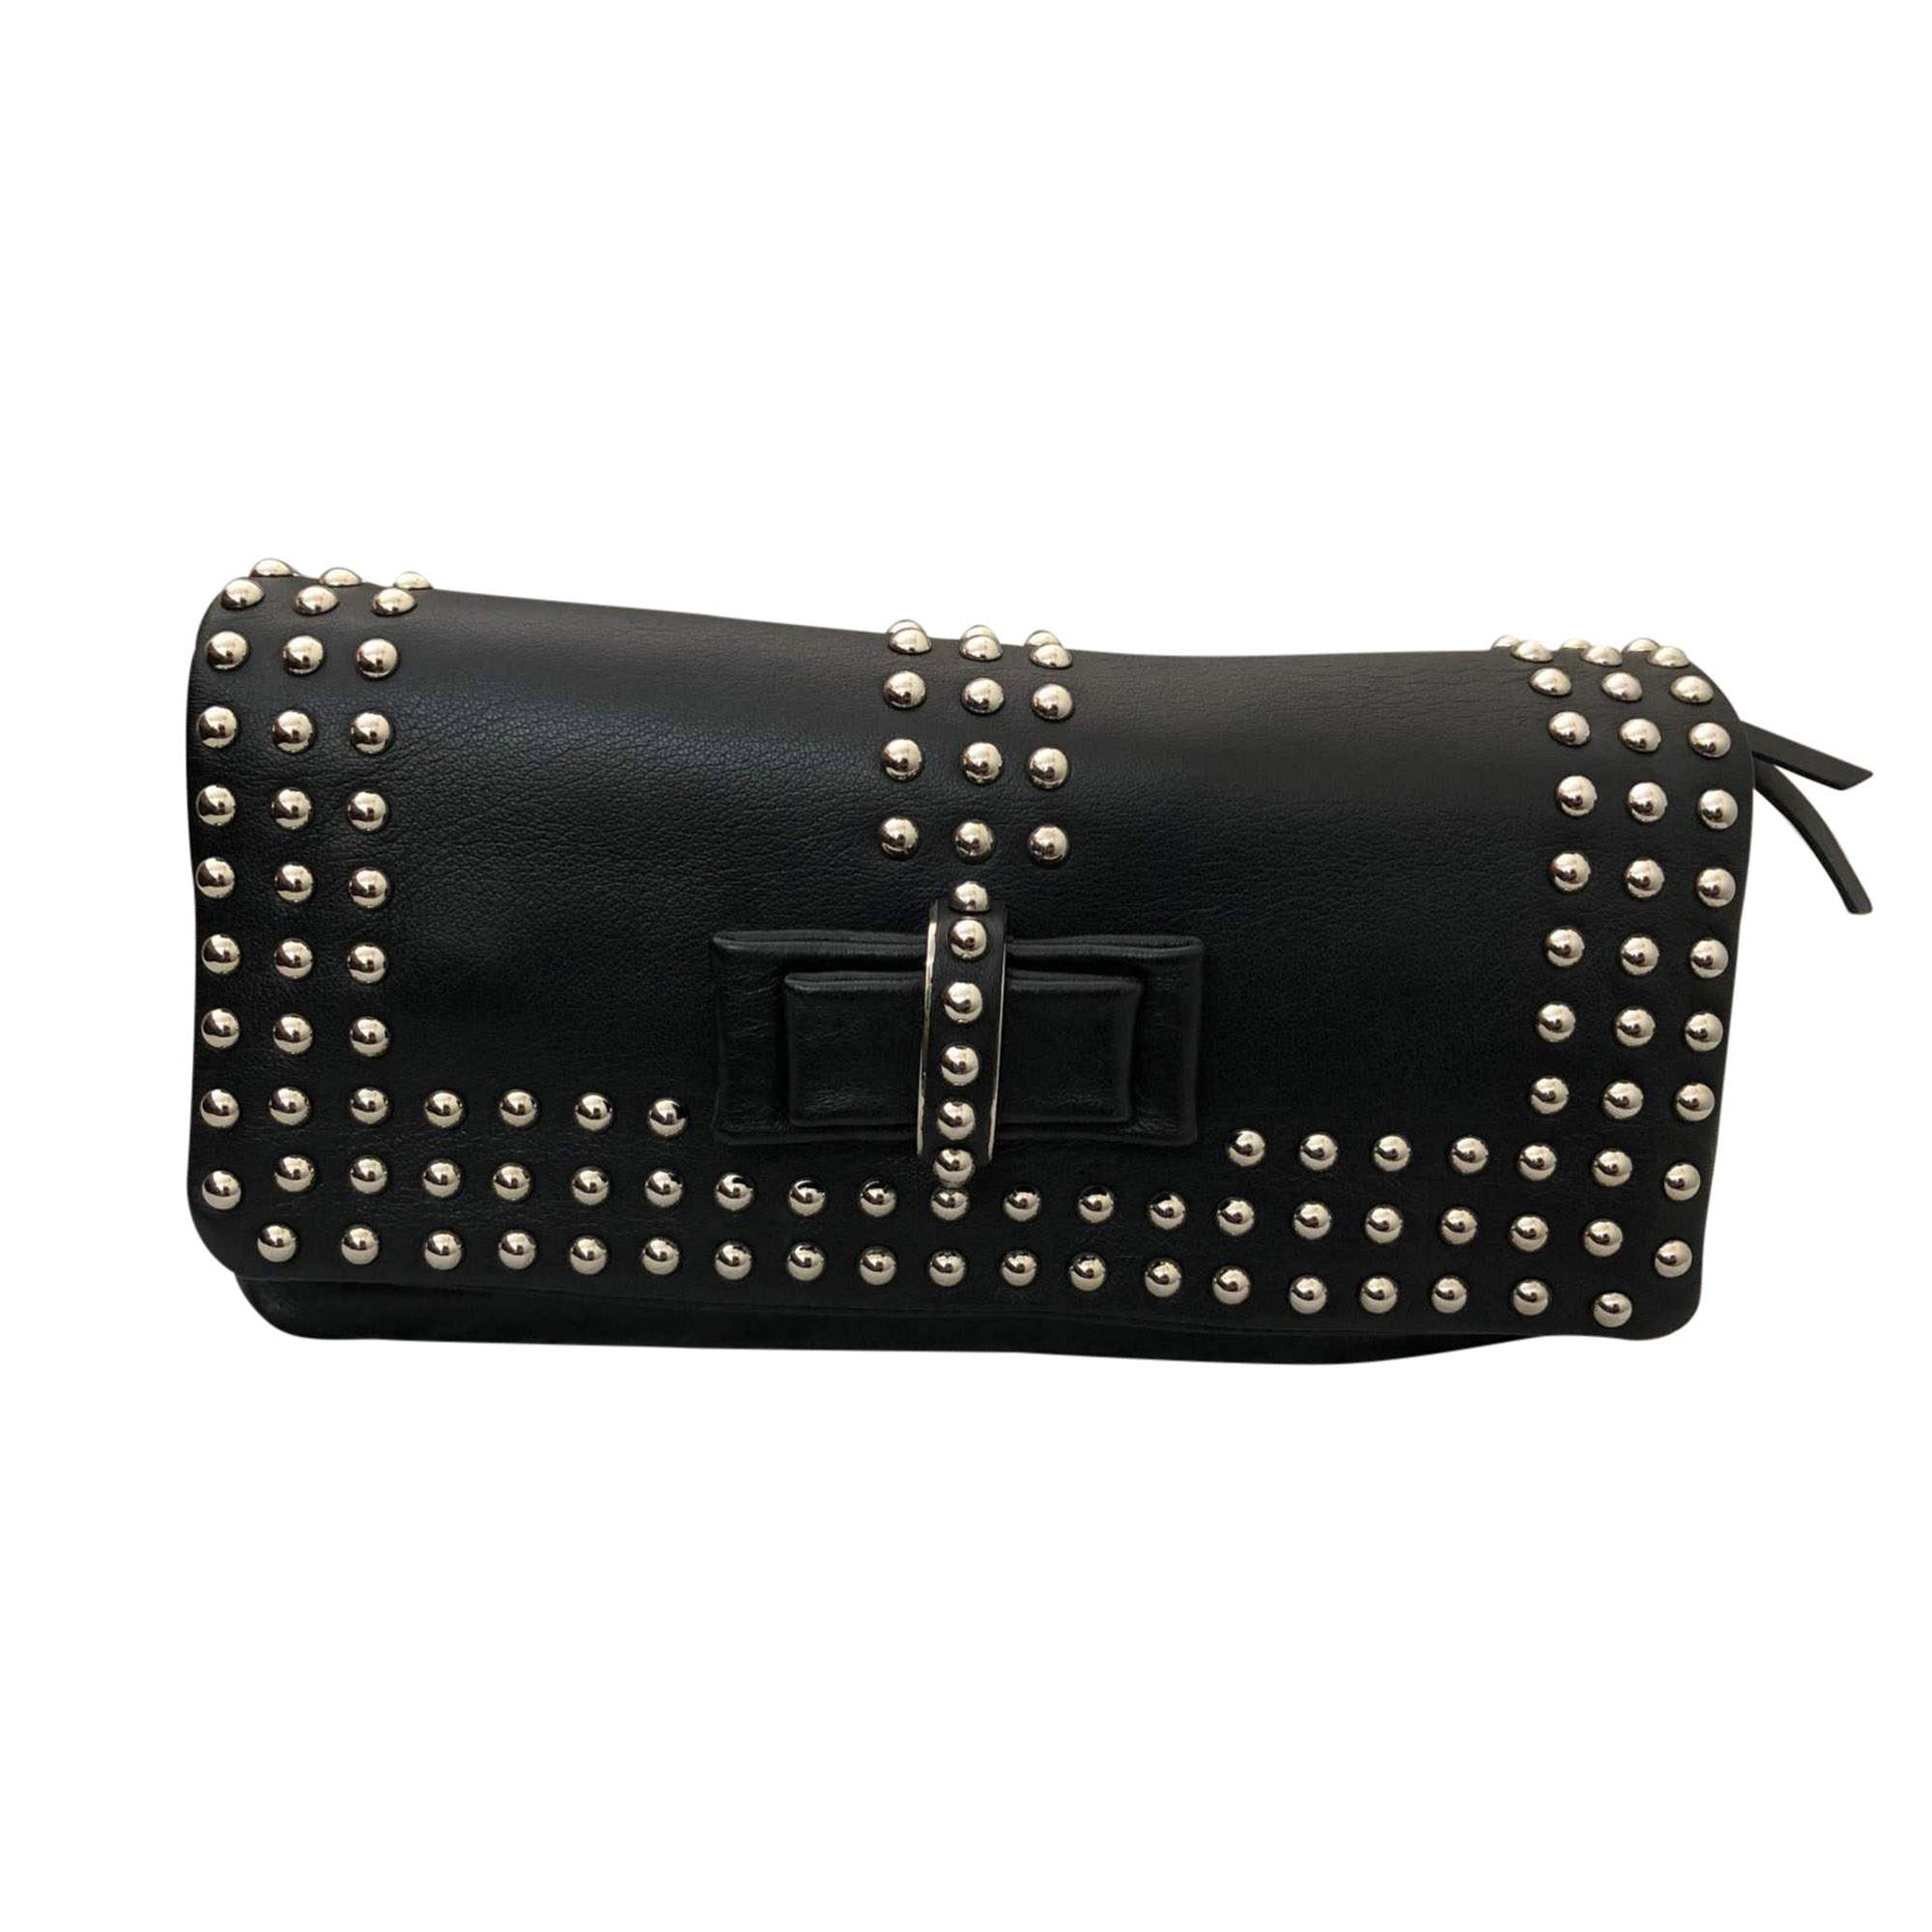 6d0bd440789 Christian Louboutin Black leather Clutch | The Chic Selection